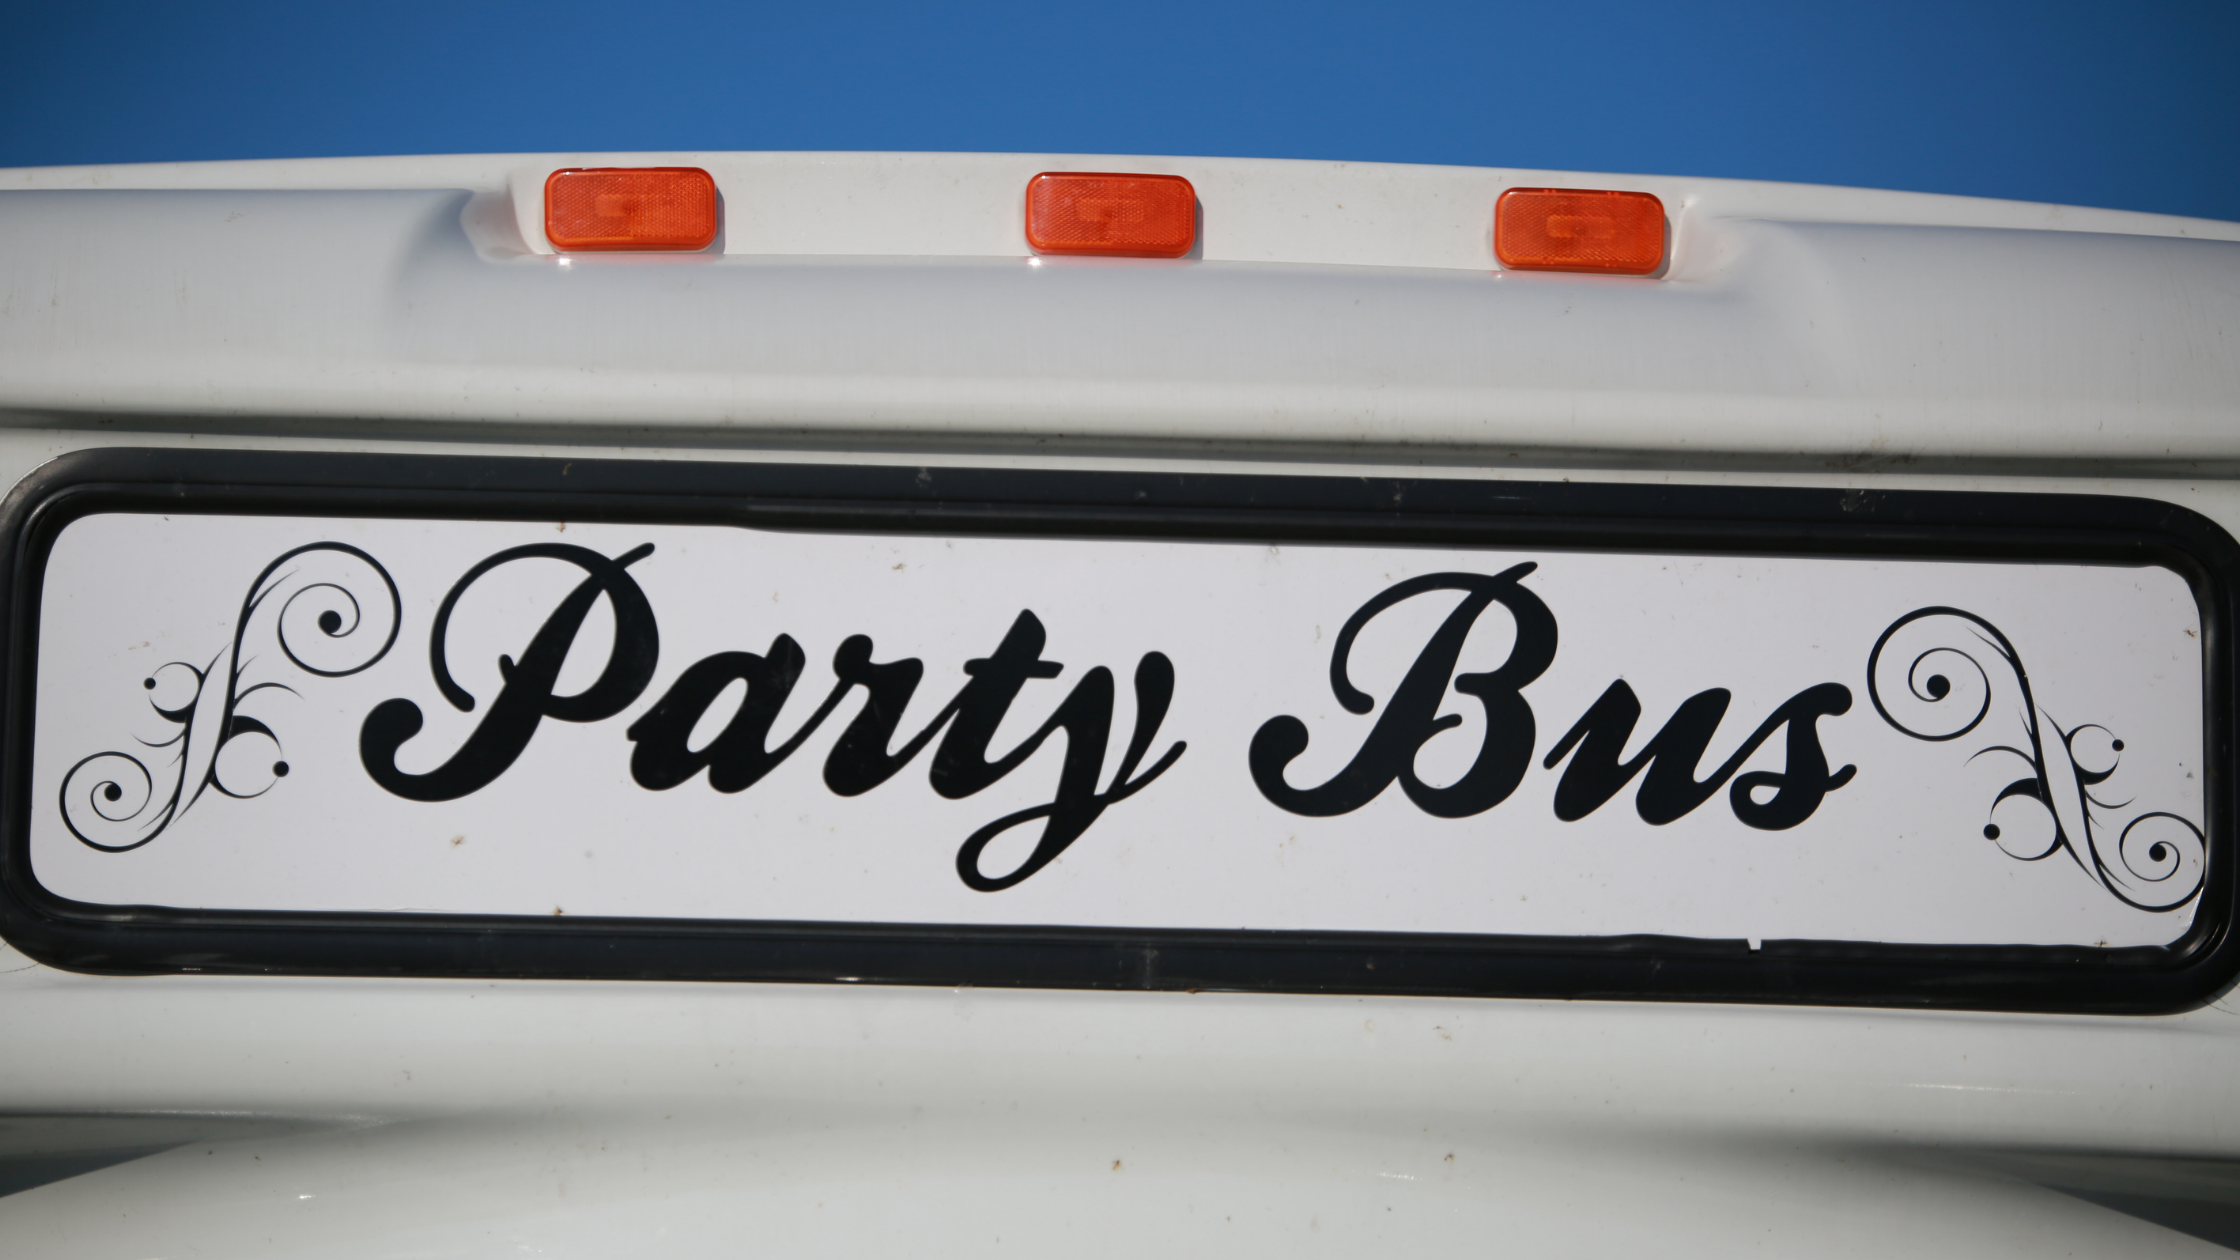 Everything You Need to Know About Hiring a Party Bus